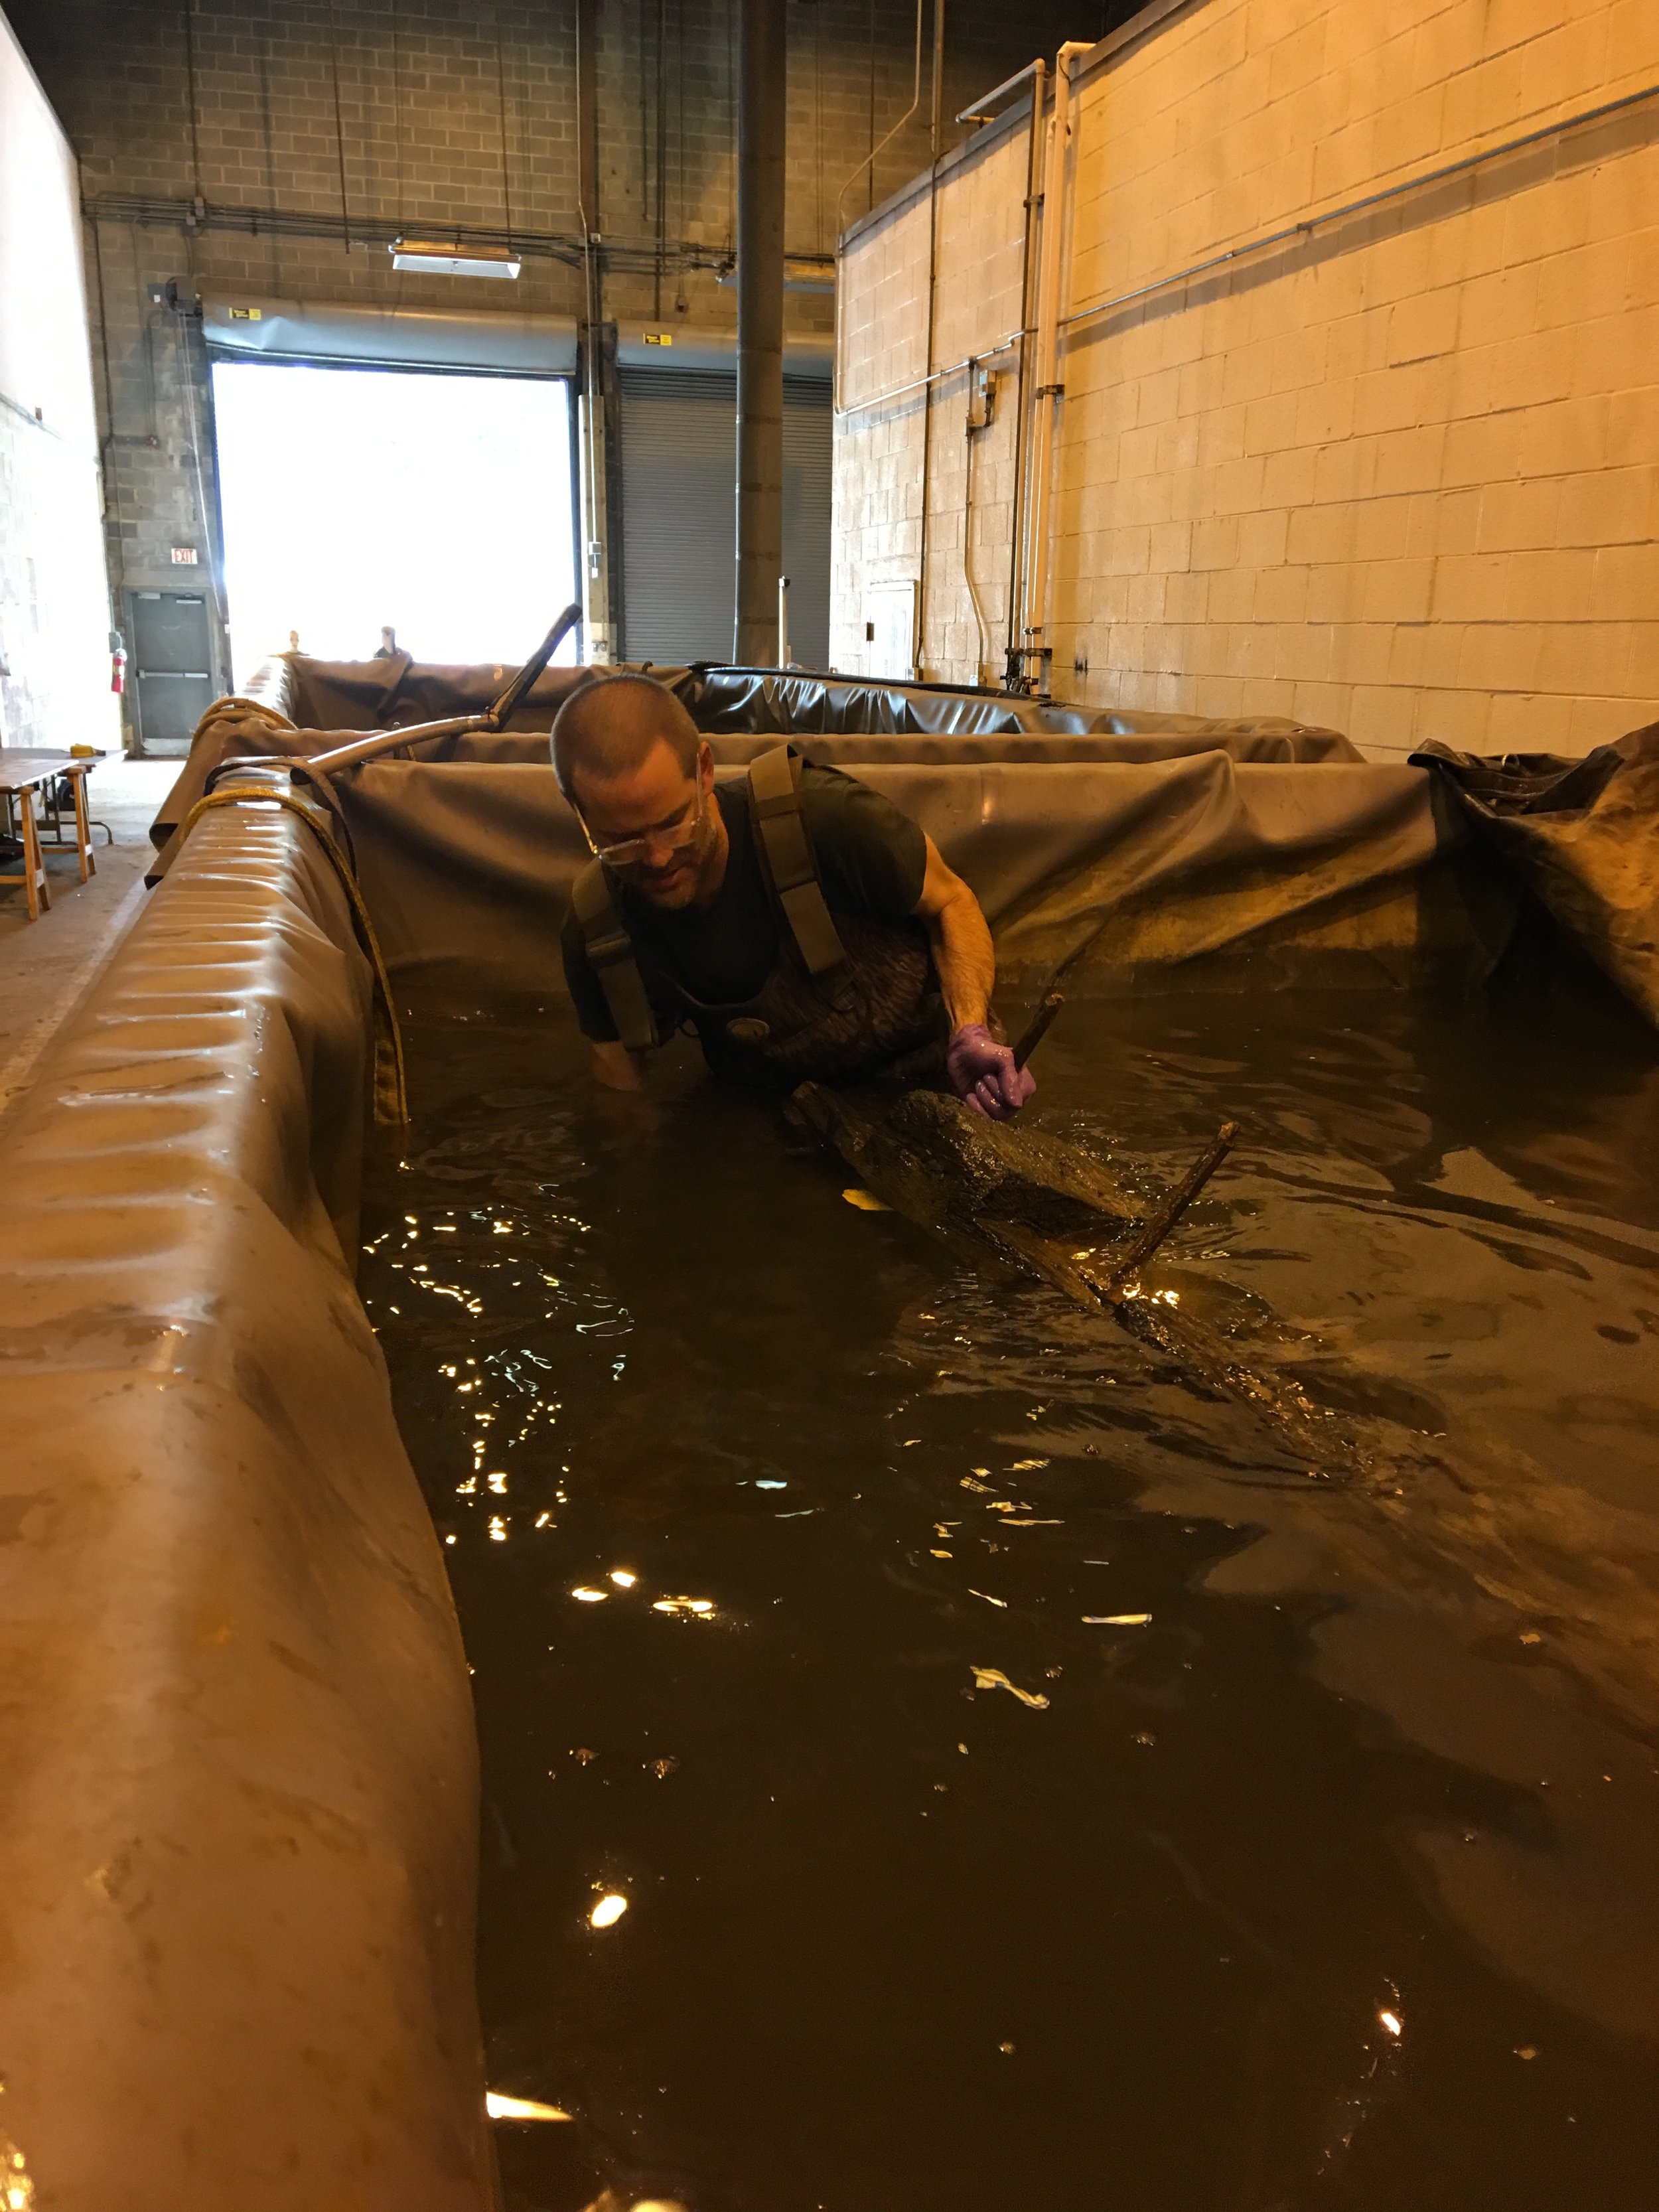 WSSI archeologist Ed Johnson helps as timbers are lifted from conservation tanks.  In June 2017, Ed and other volunteers removed timbers from their tanks, carefully packed them, and sent them to Texas A&M University's  Conservation Research Laboratory  for conservation. They will return to Alexandria after a multiyear process.